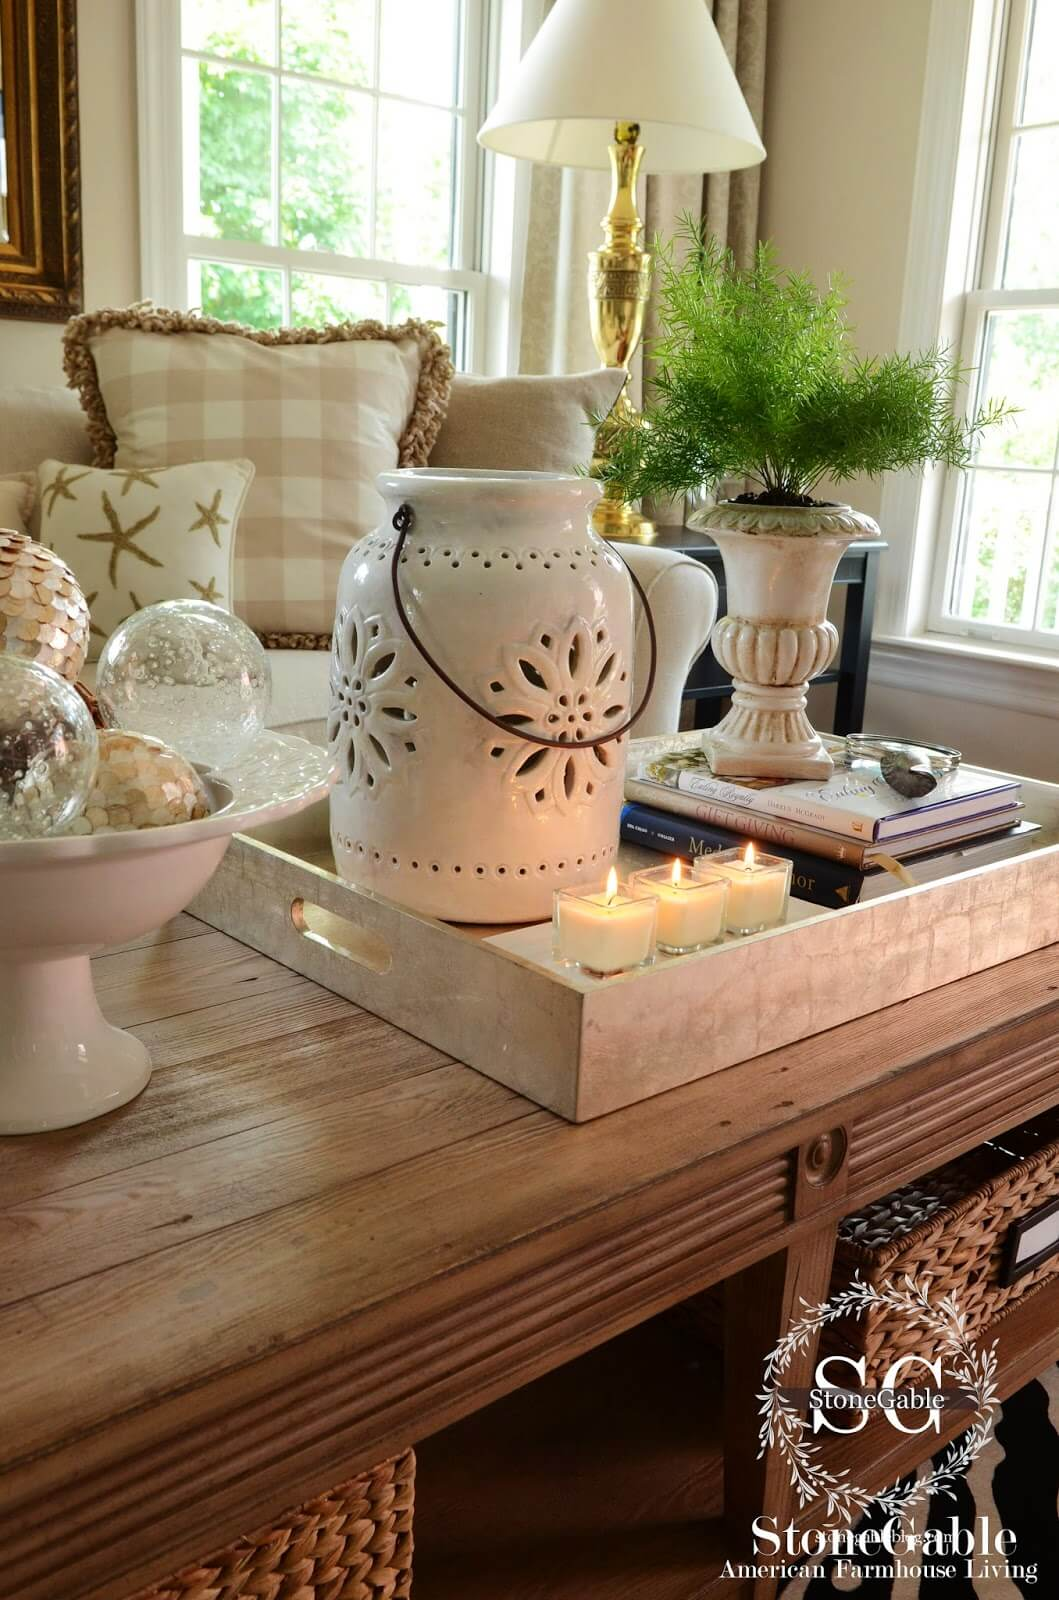 Pedestal Vessels with Houseplants and Decorative Accent Spheres